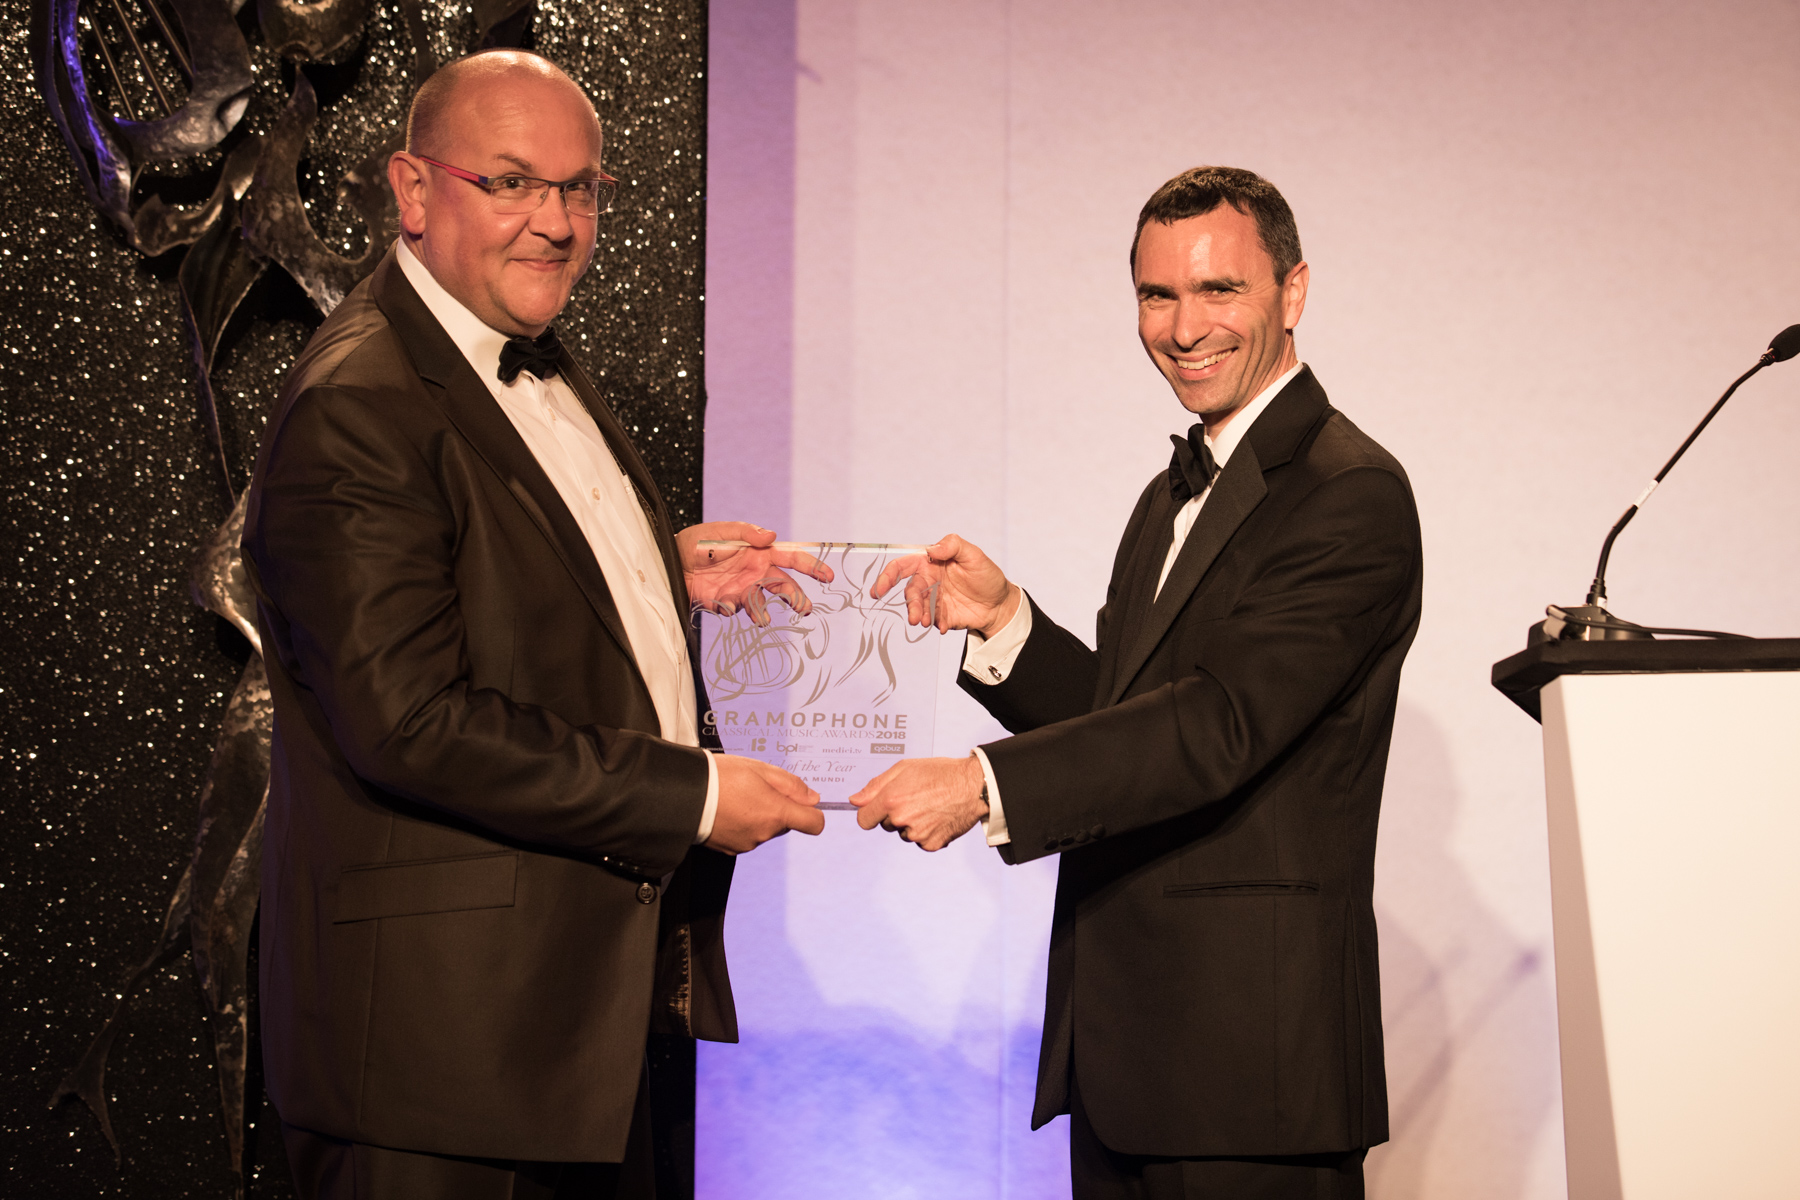 Editor Martin Cullingford (right) presents Harmonia Mundi with their Label of the Year Award